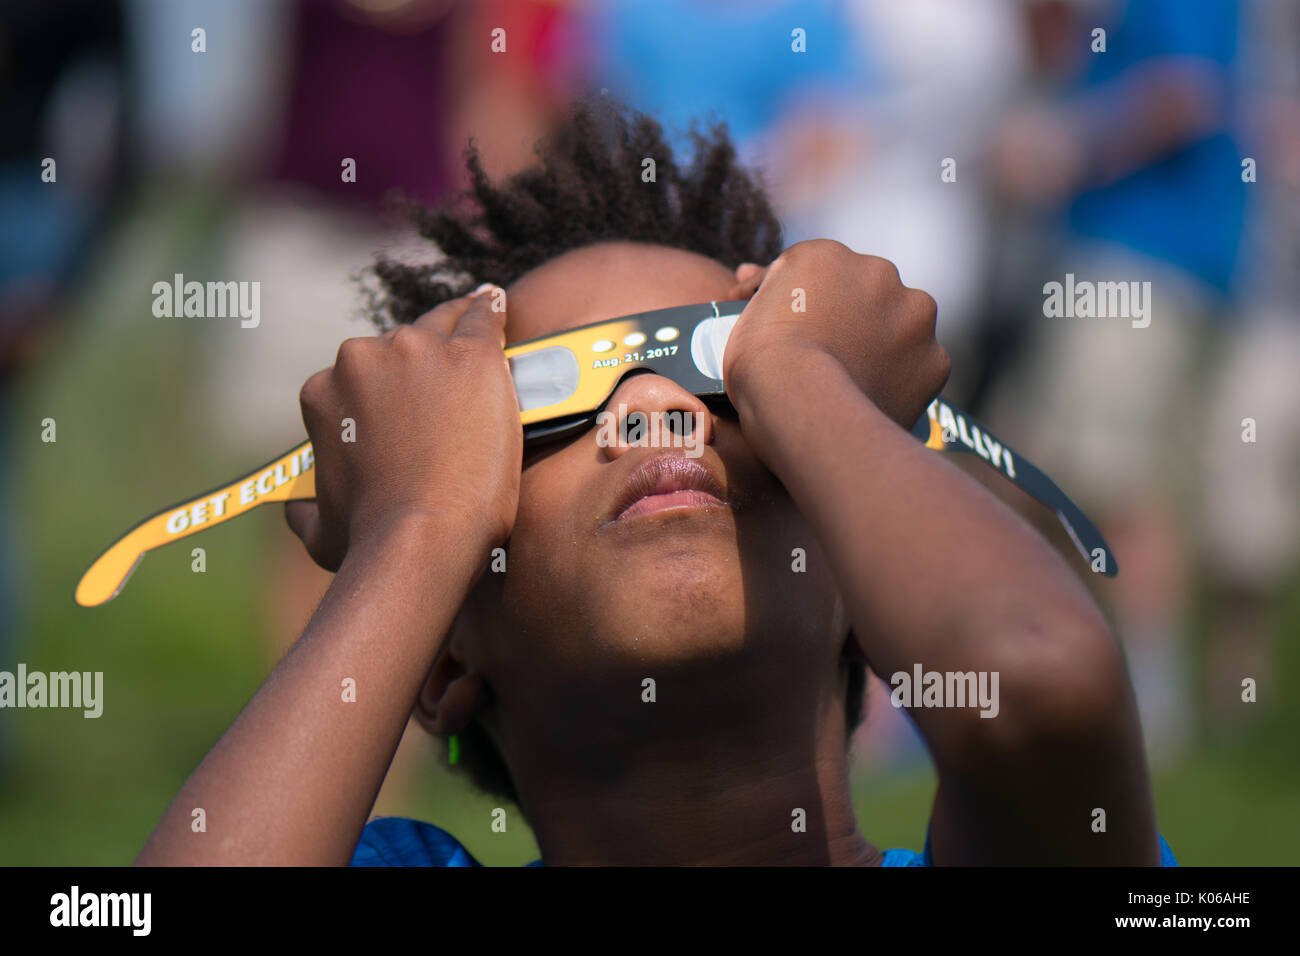 Amherst, USA. 21st Aug, 2017. African American boy watching eclipse in Amherst MA Credit: Edgar Izzy/Alamy Live News - Stock Image